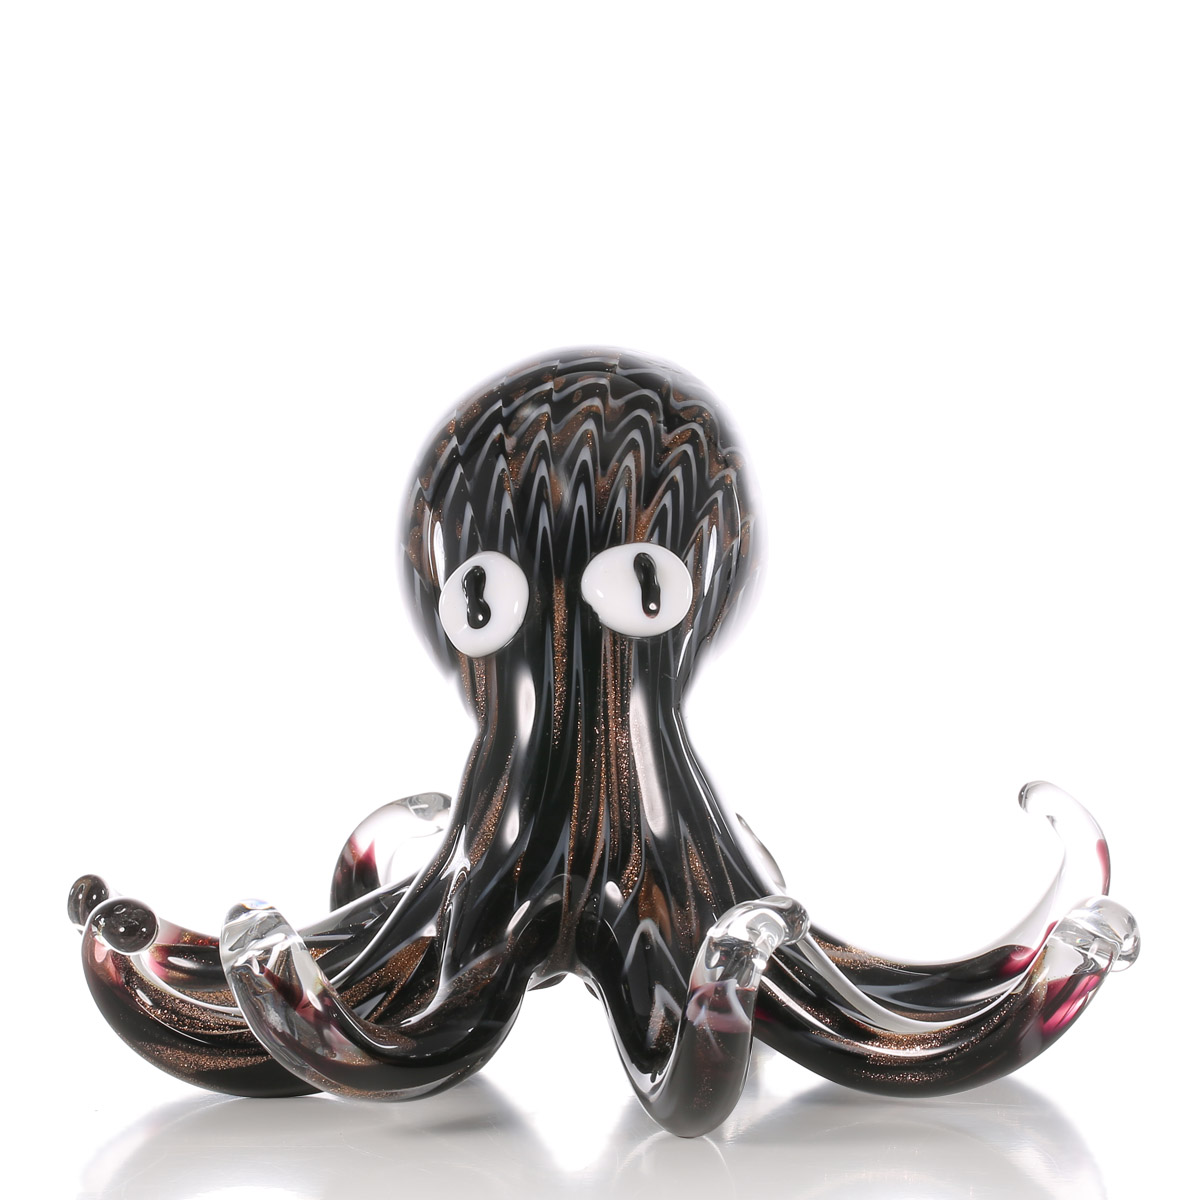 Glass animal ornaments - Tooarts Black Octopus Gift Glass Ornament Animal Figurine Handblown Home Decor Figurine Office Desktop Decoration Craft